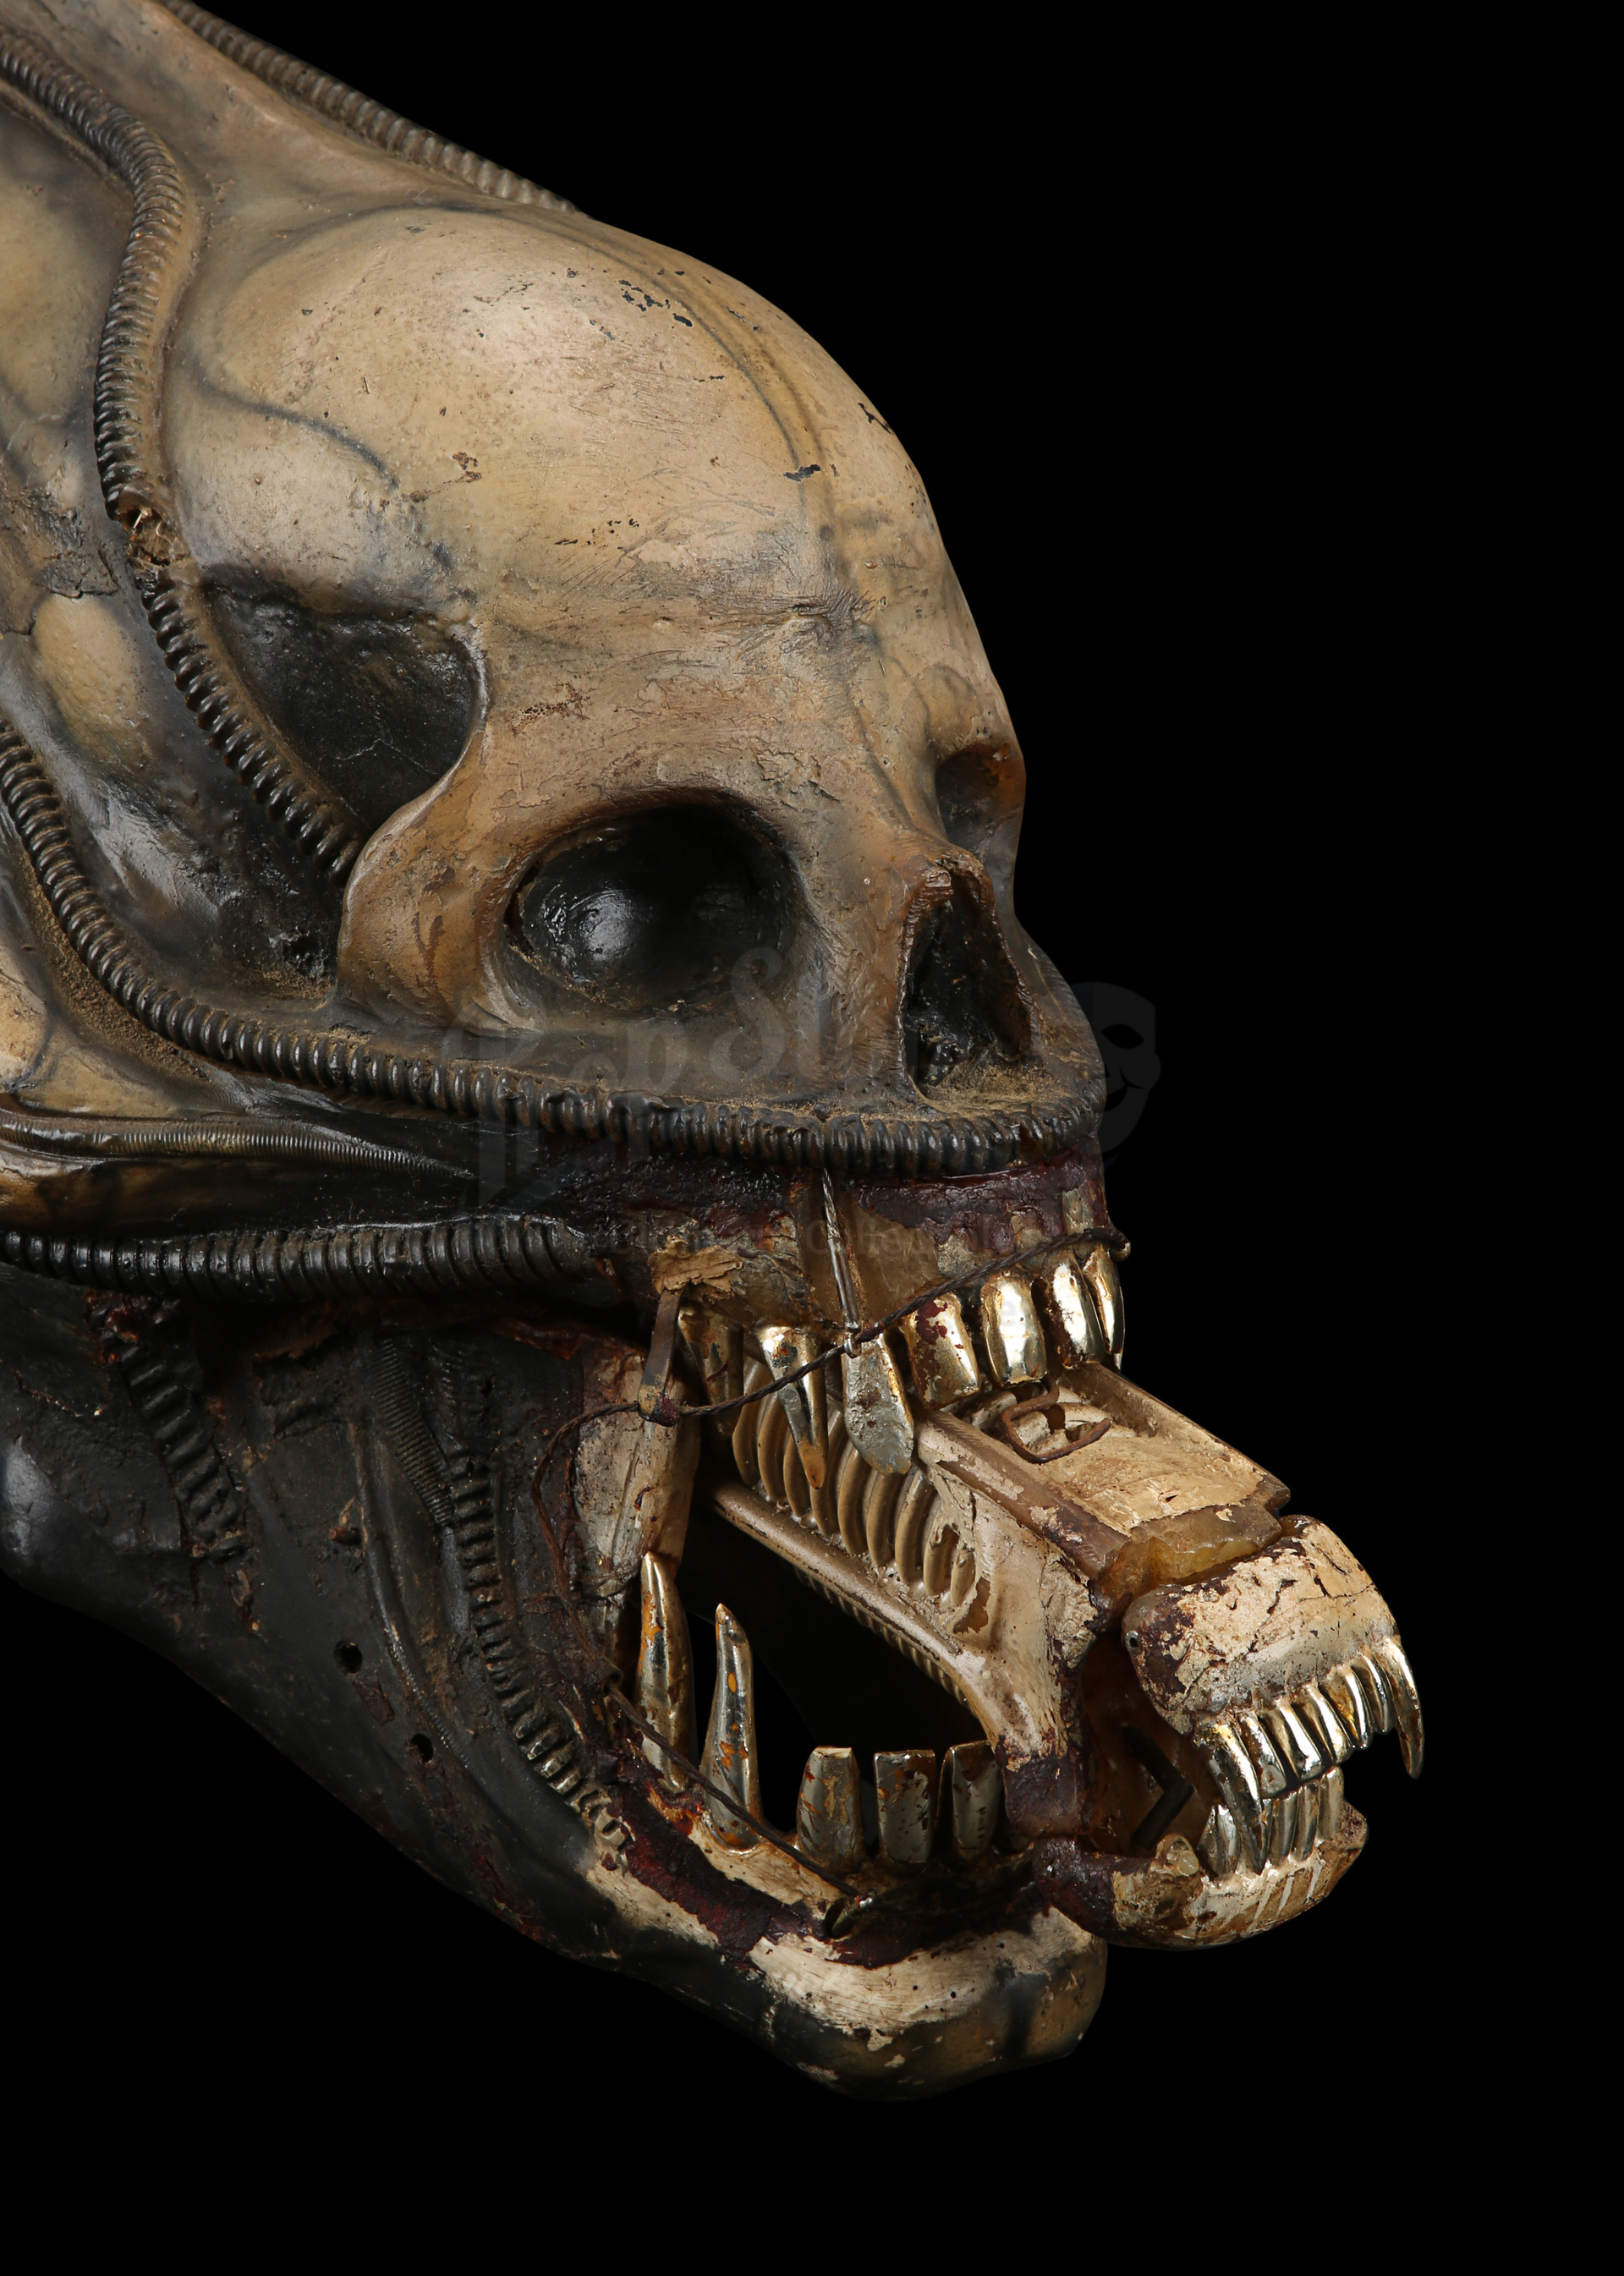 ALIEN (1979) - H.R. Giger-designed Special Effects Mechanical Alien Head - Image 18 of 34